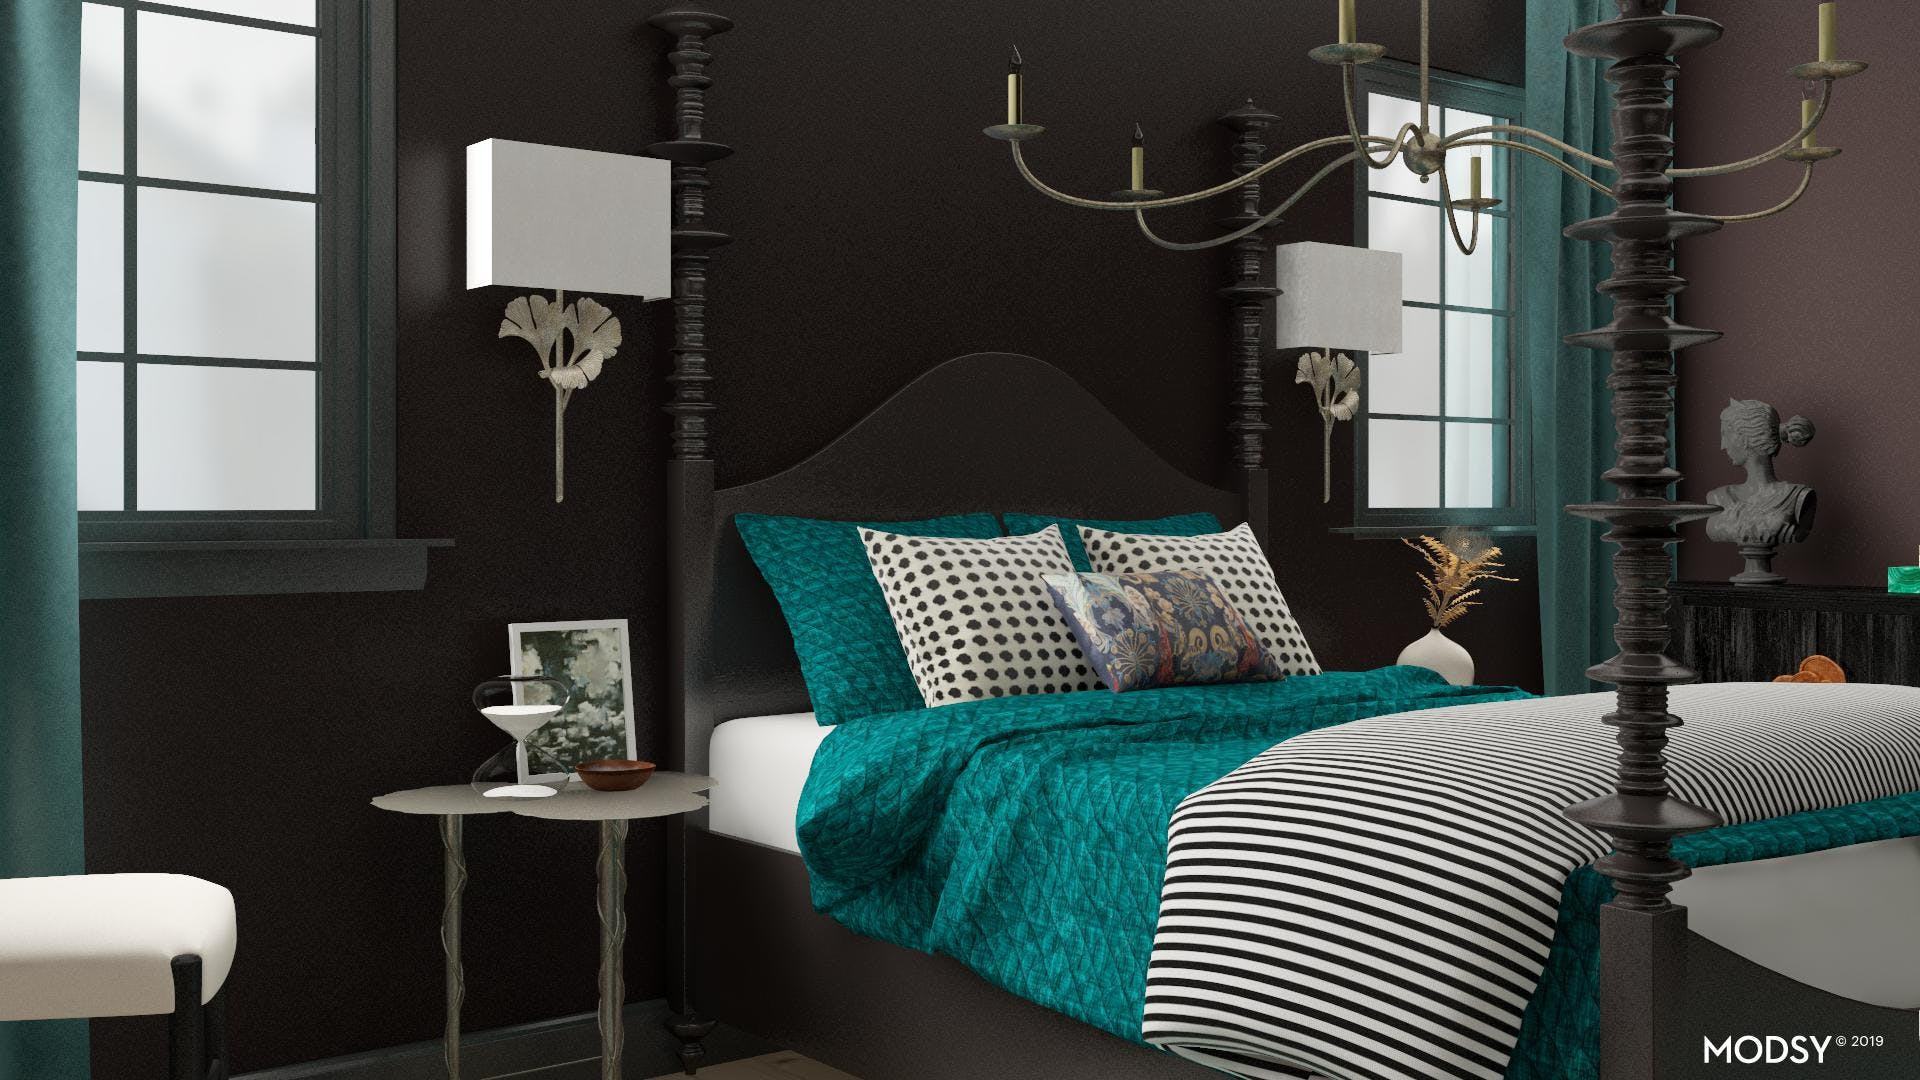 Bewitching Boudoir- Traditional meets Chic Bedroom